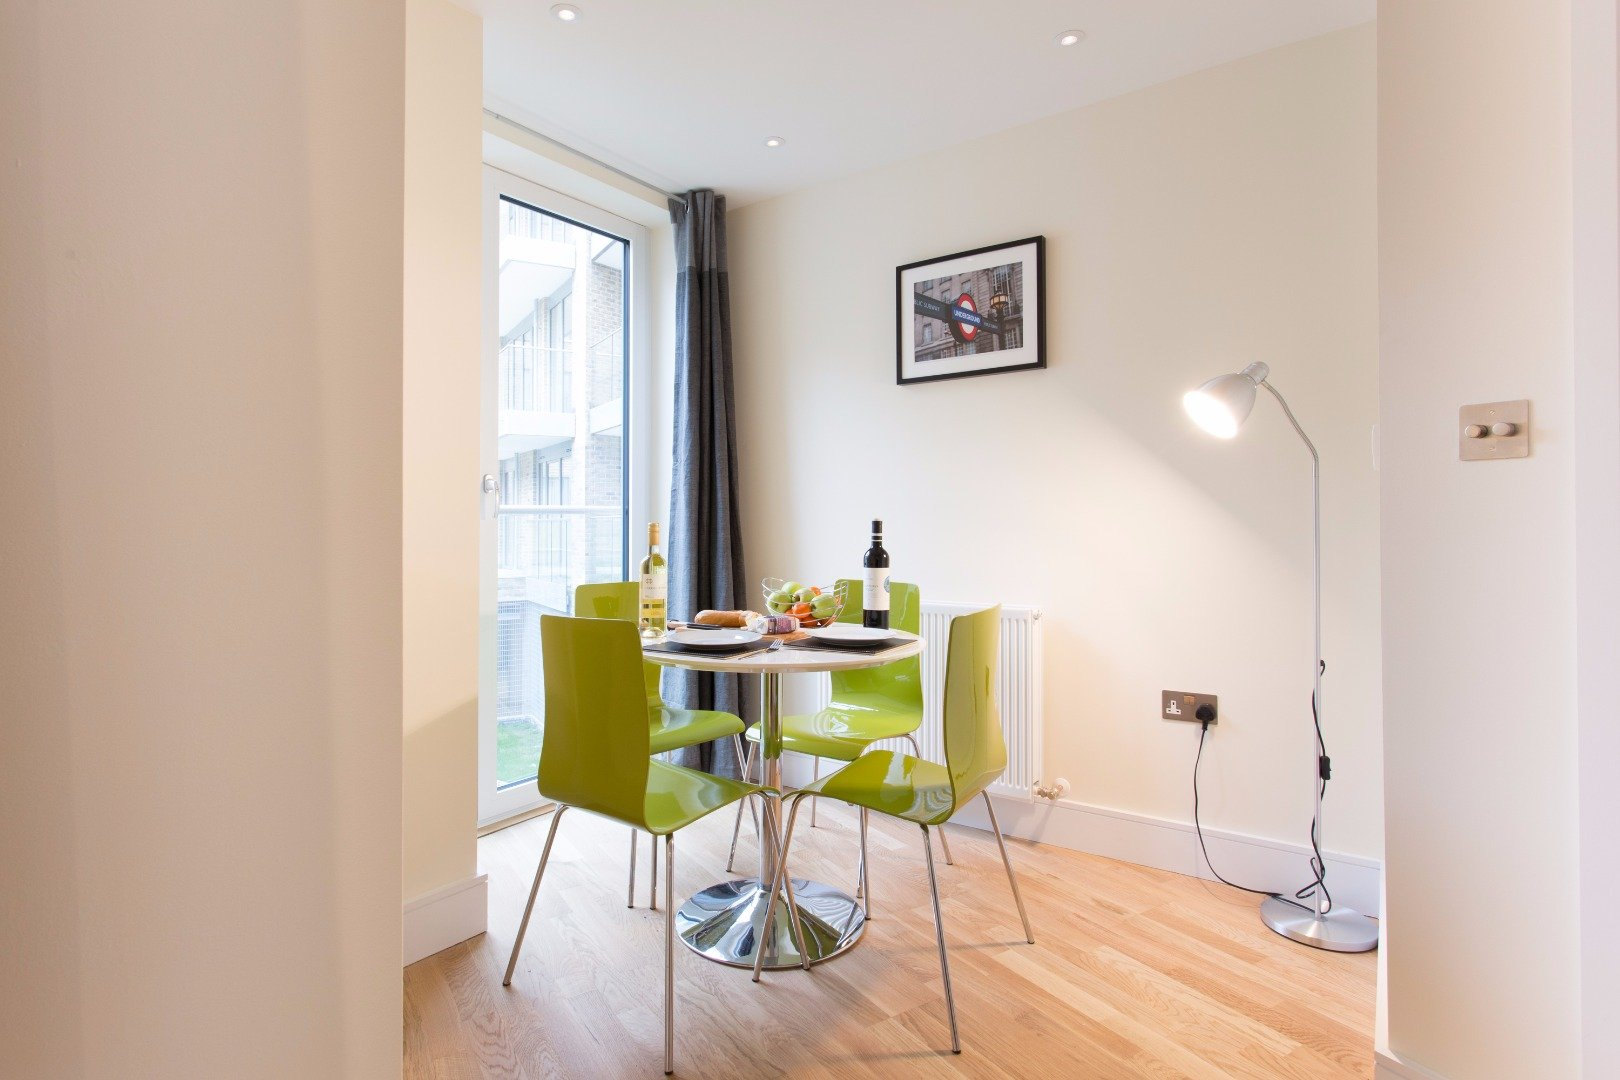 Looking-for-affordable-apartments-within-easy-access-to-Canary-Wharf?-why-not-book-our-lovely-Poplar-Serviced-Apartments-today.-Call-for-great-rates.